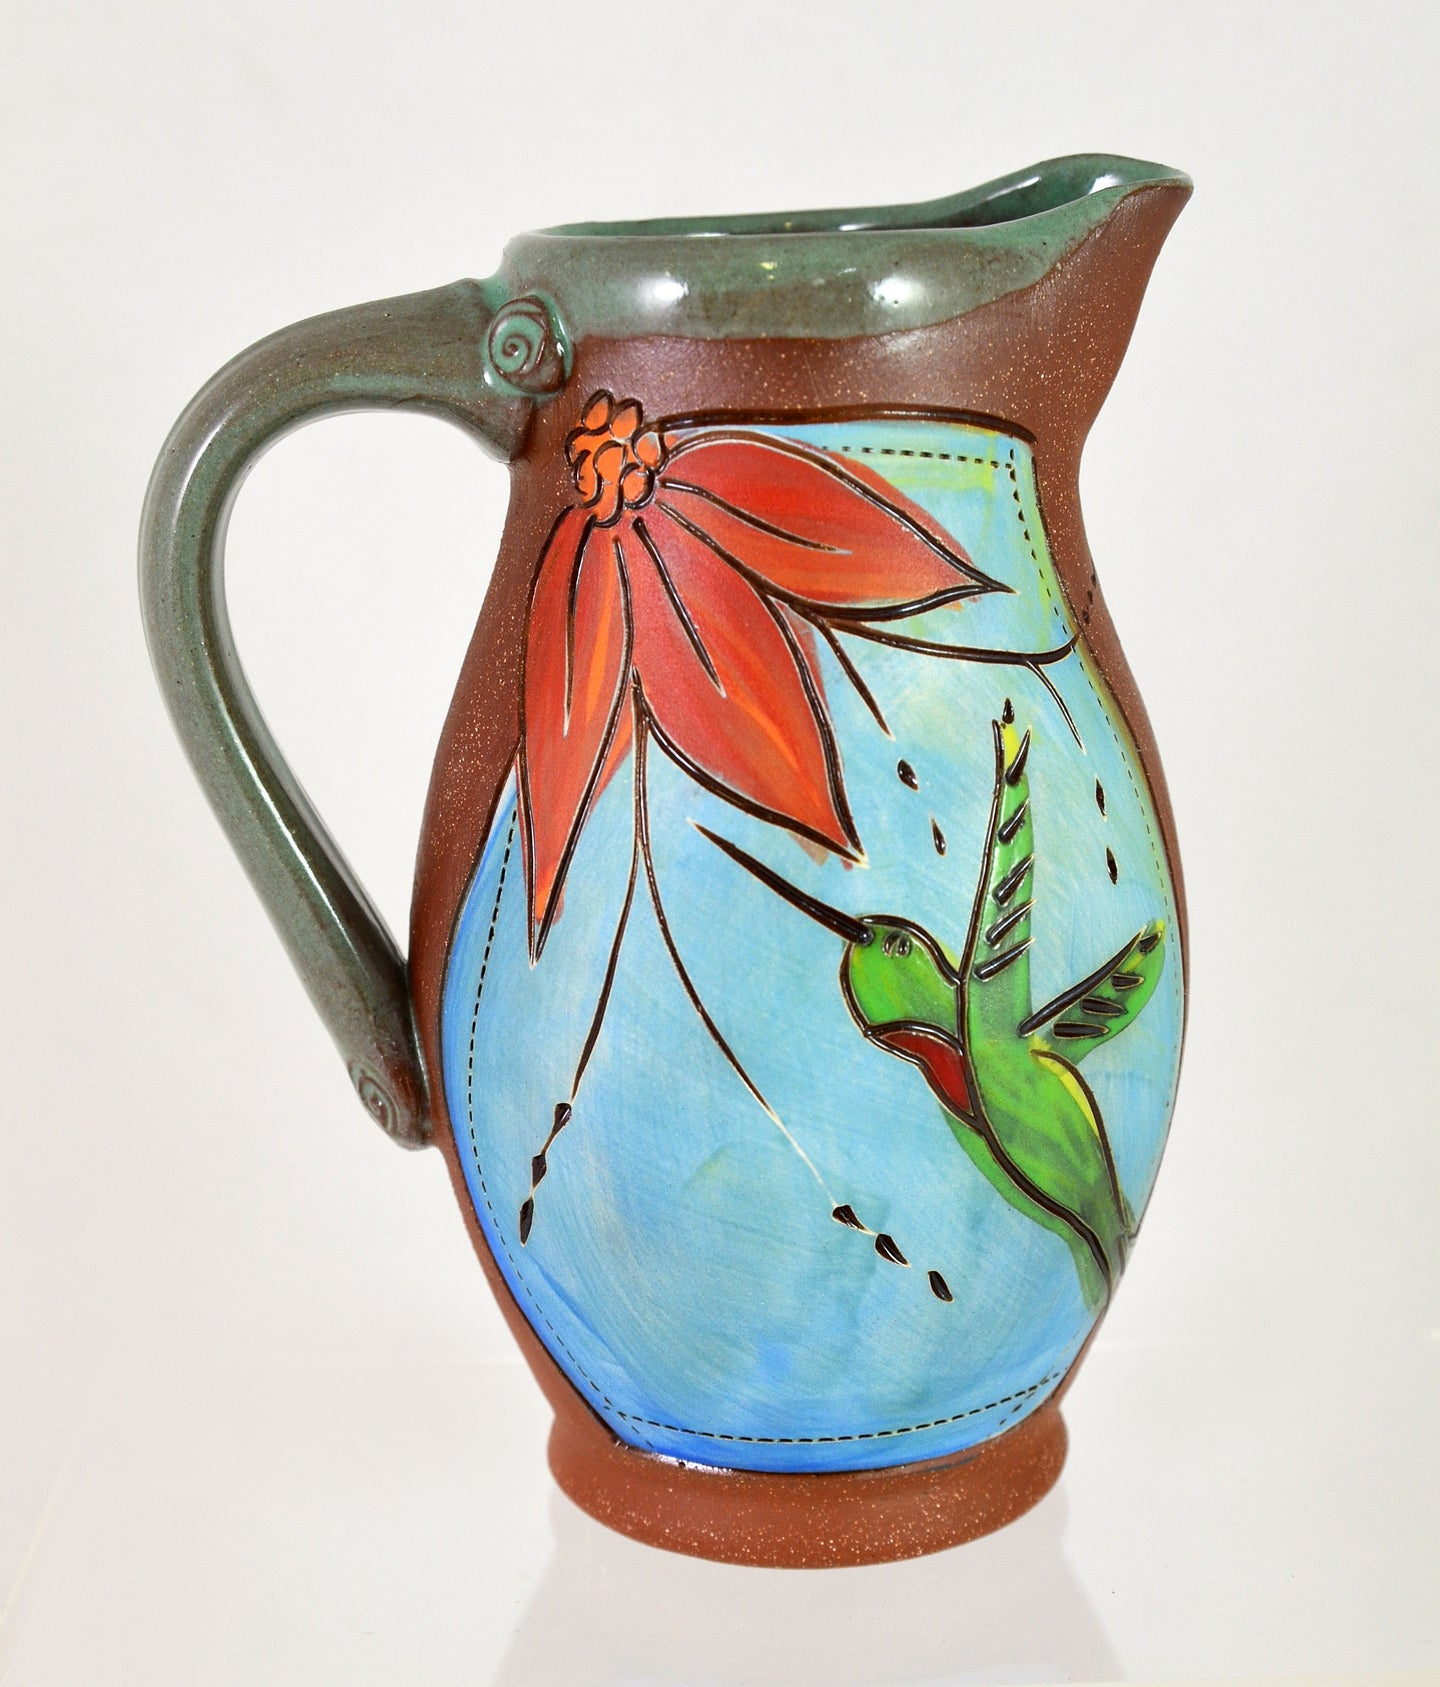 Hummingbird Pitcher by Jennifer Stas